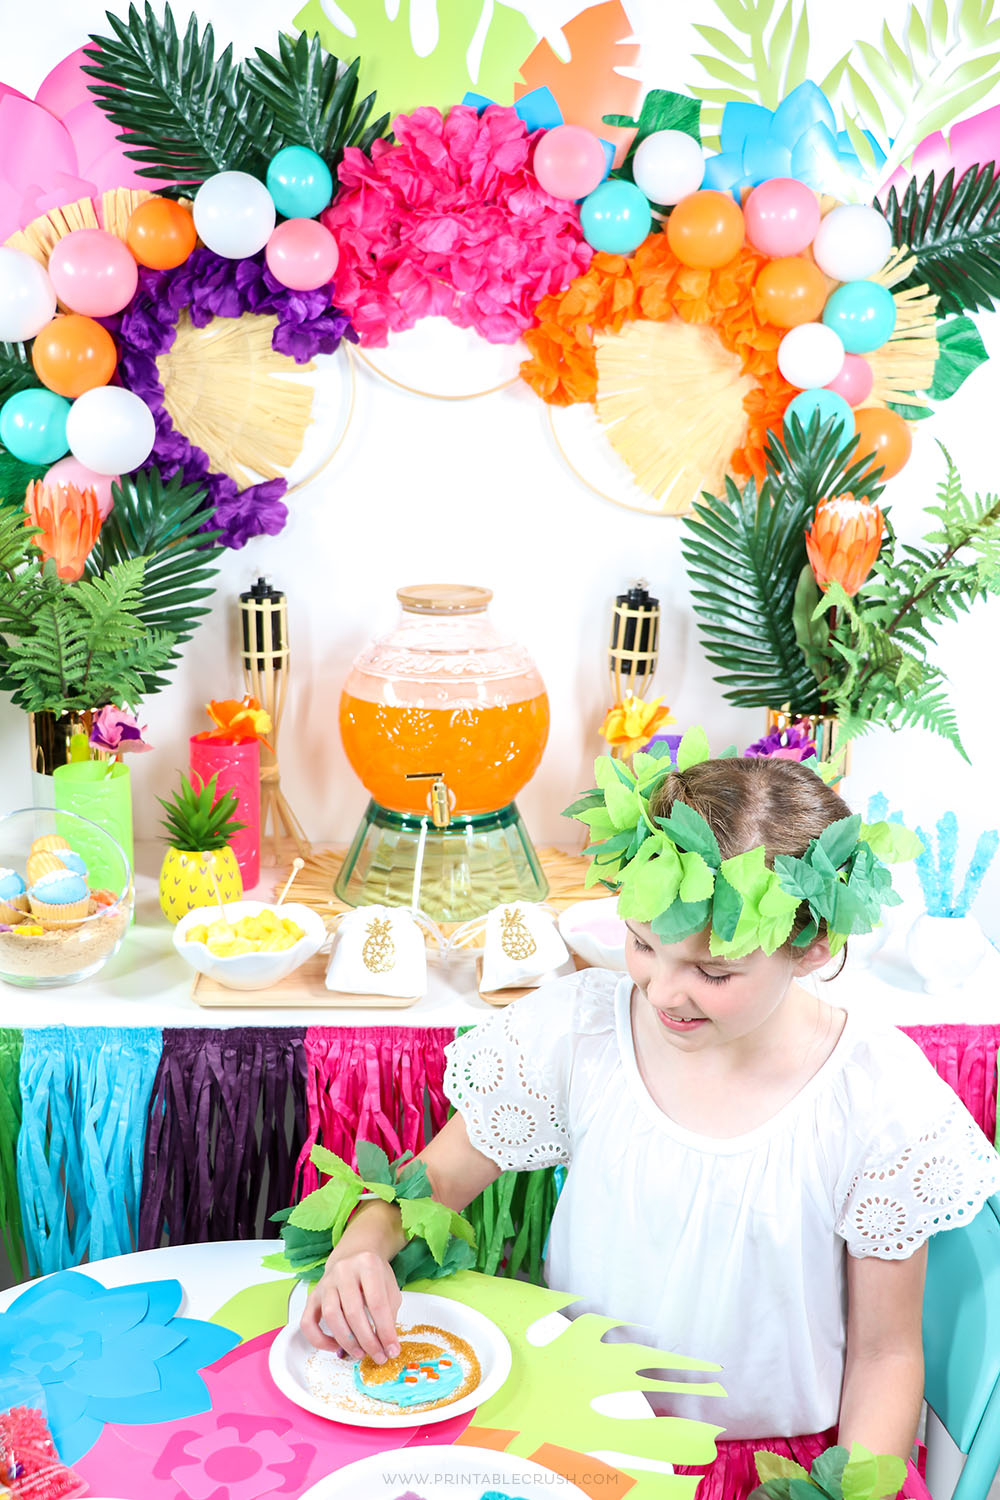 Add a creative space to your luau party with this cute and easy Luau Cookie Decorating Station